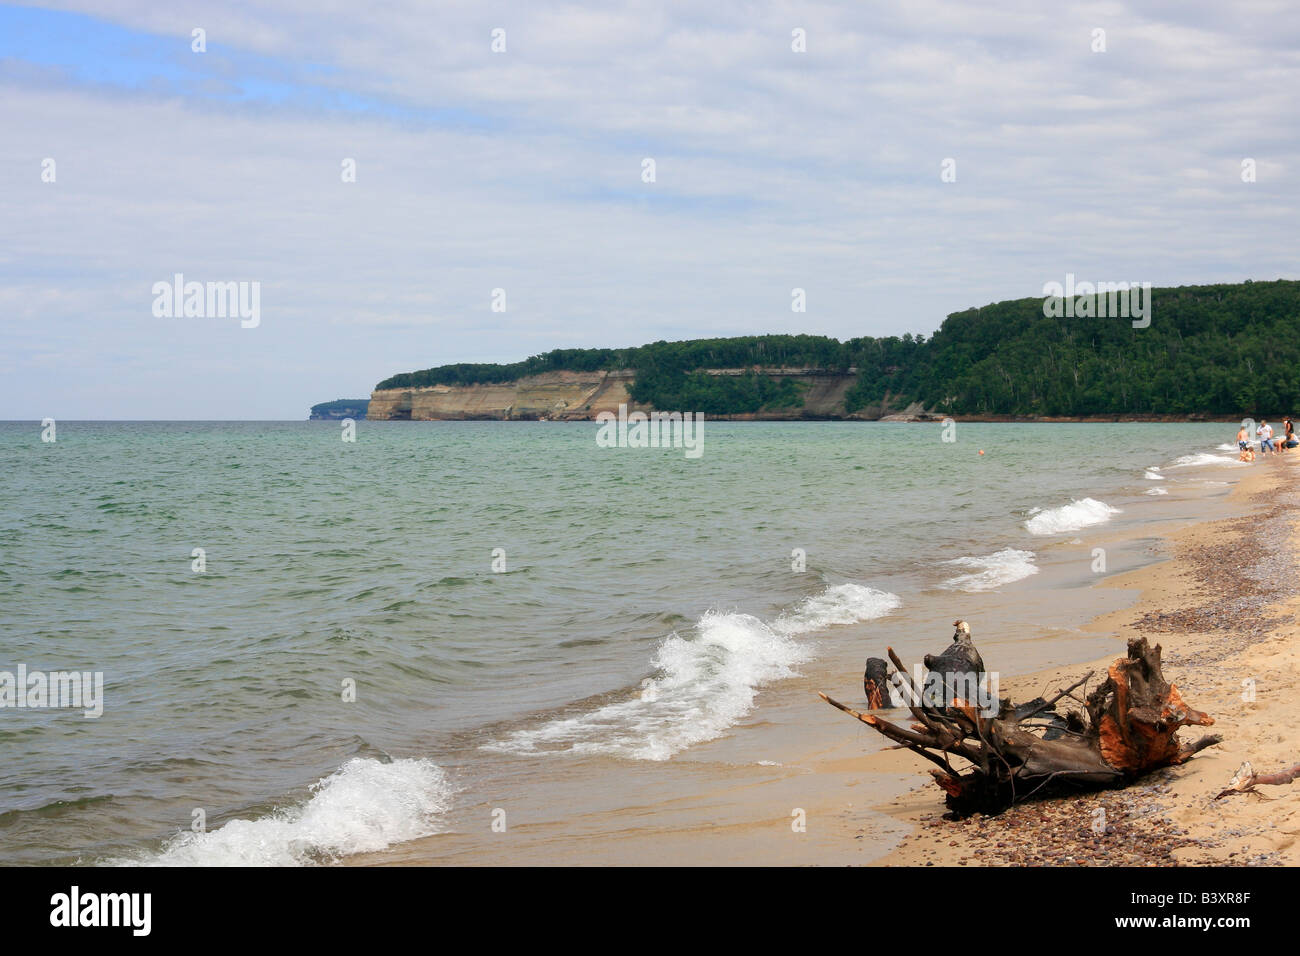 deserted destroyed devastation desolation destruction nature lake Superior beach Michigan summer colorful landscape - Stock Image